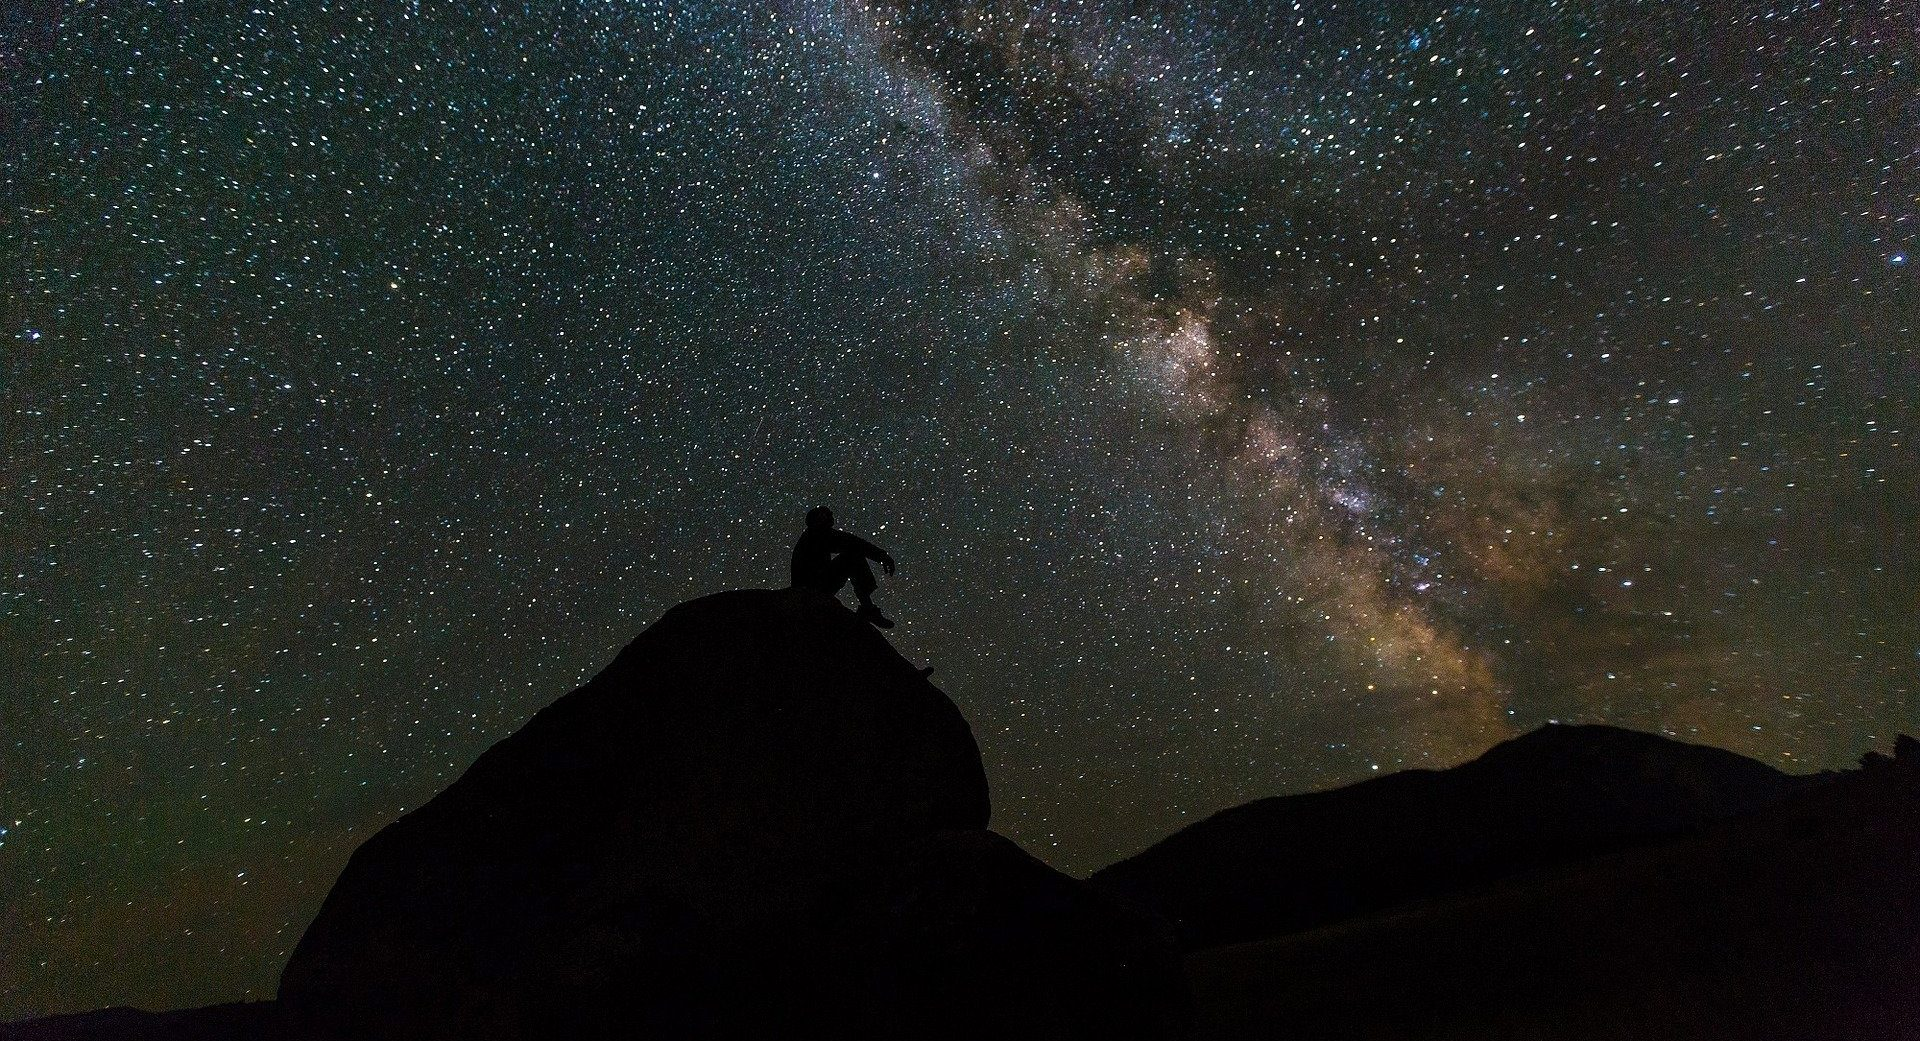 A lone star watcher gazes up at a dense band of distant suns.